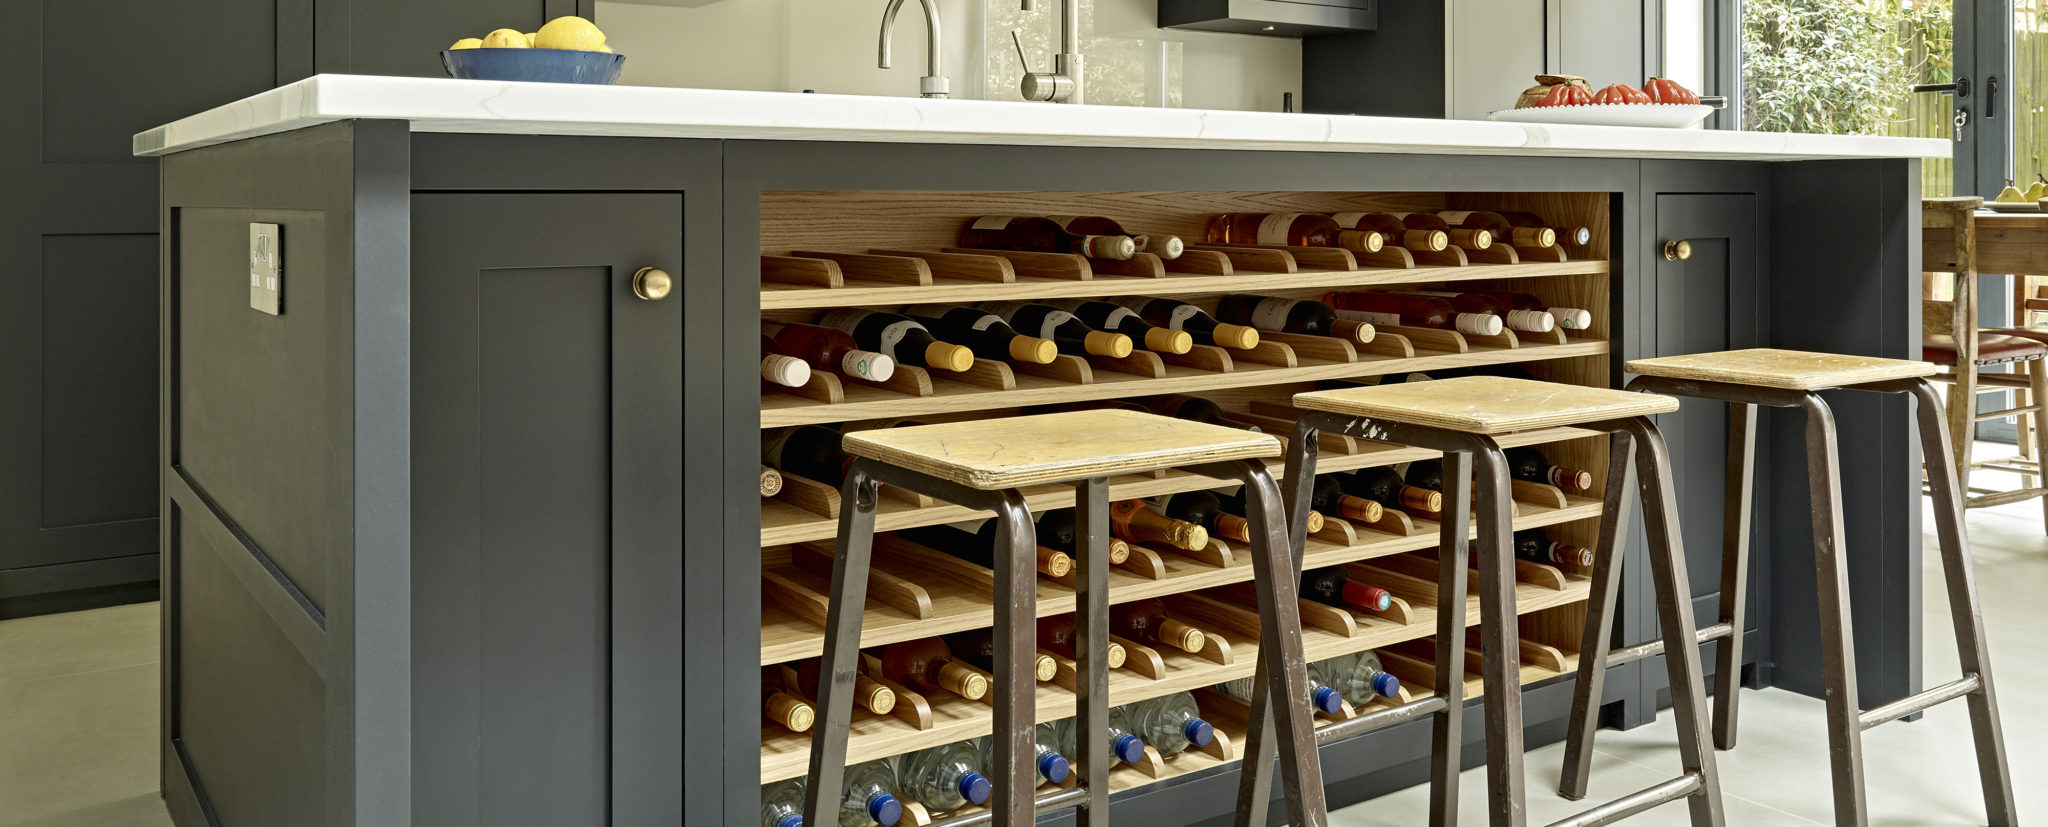 Contemporary country dark kitchen island design with integrated wine rack in light oak